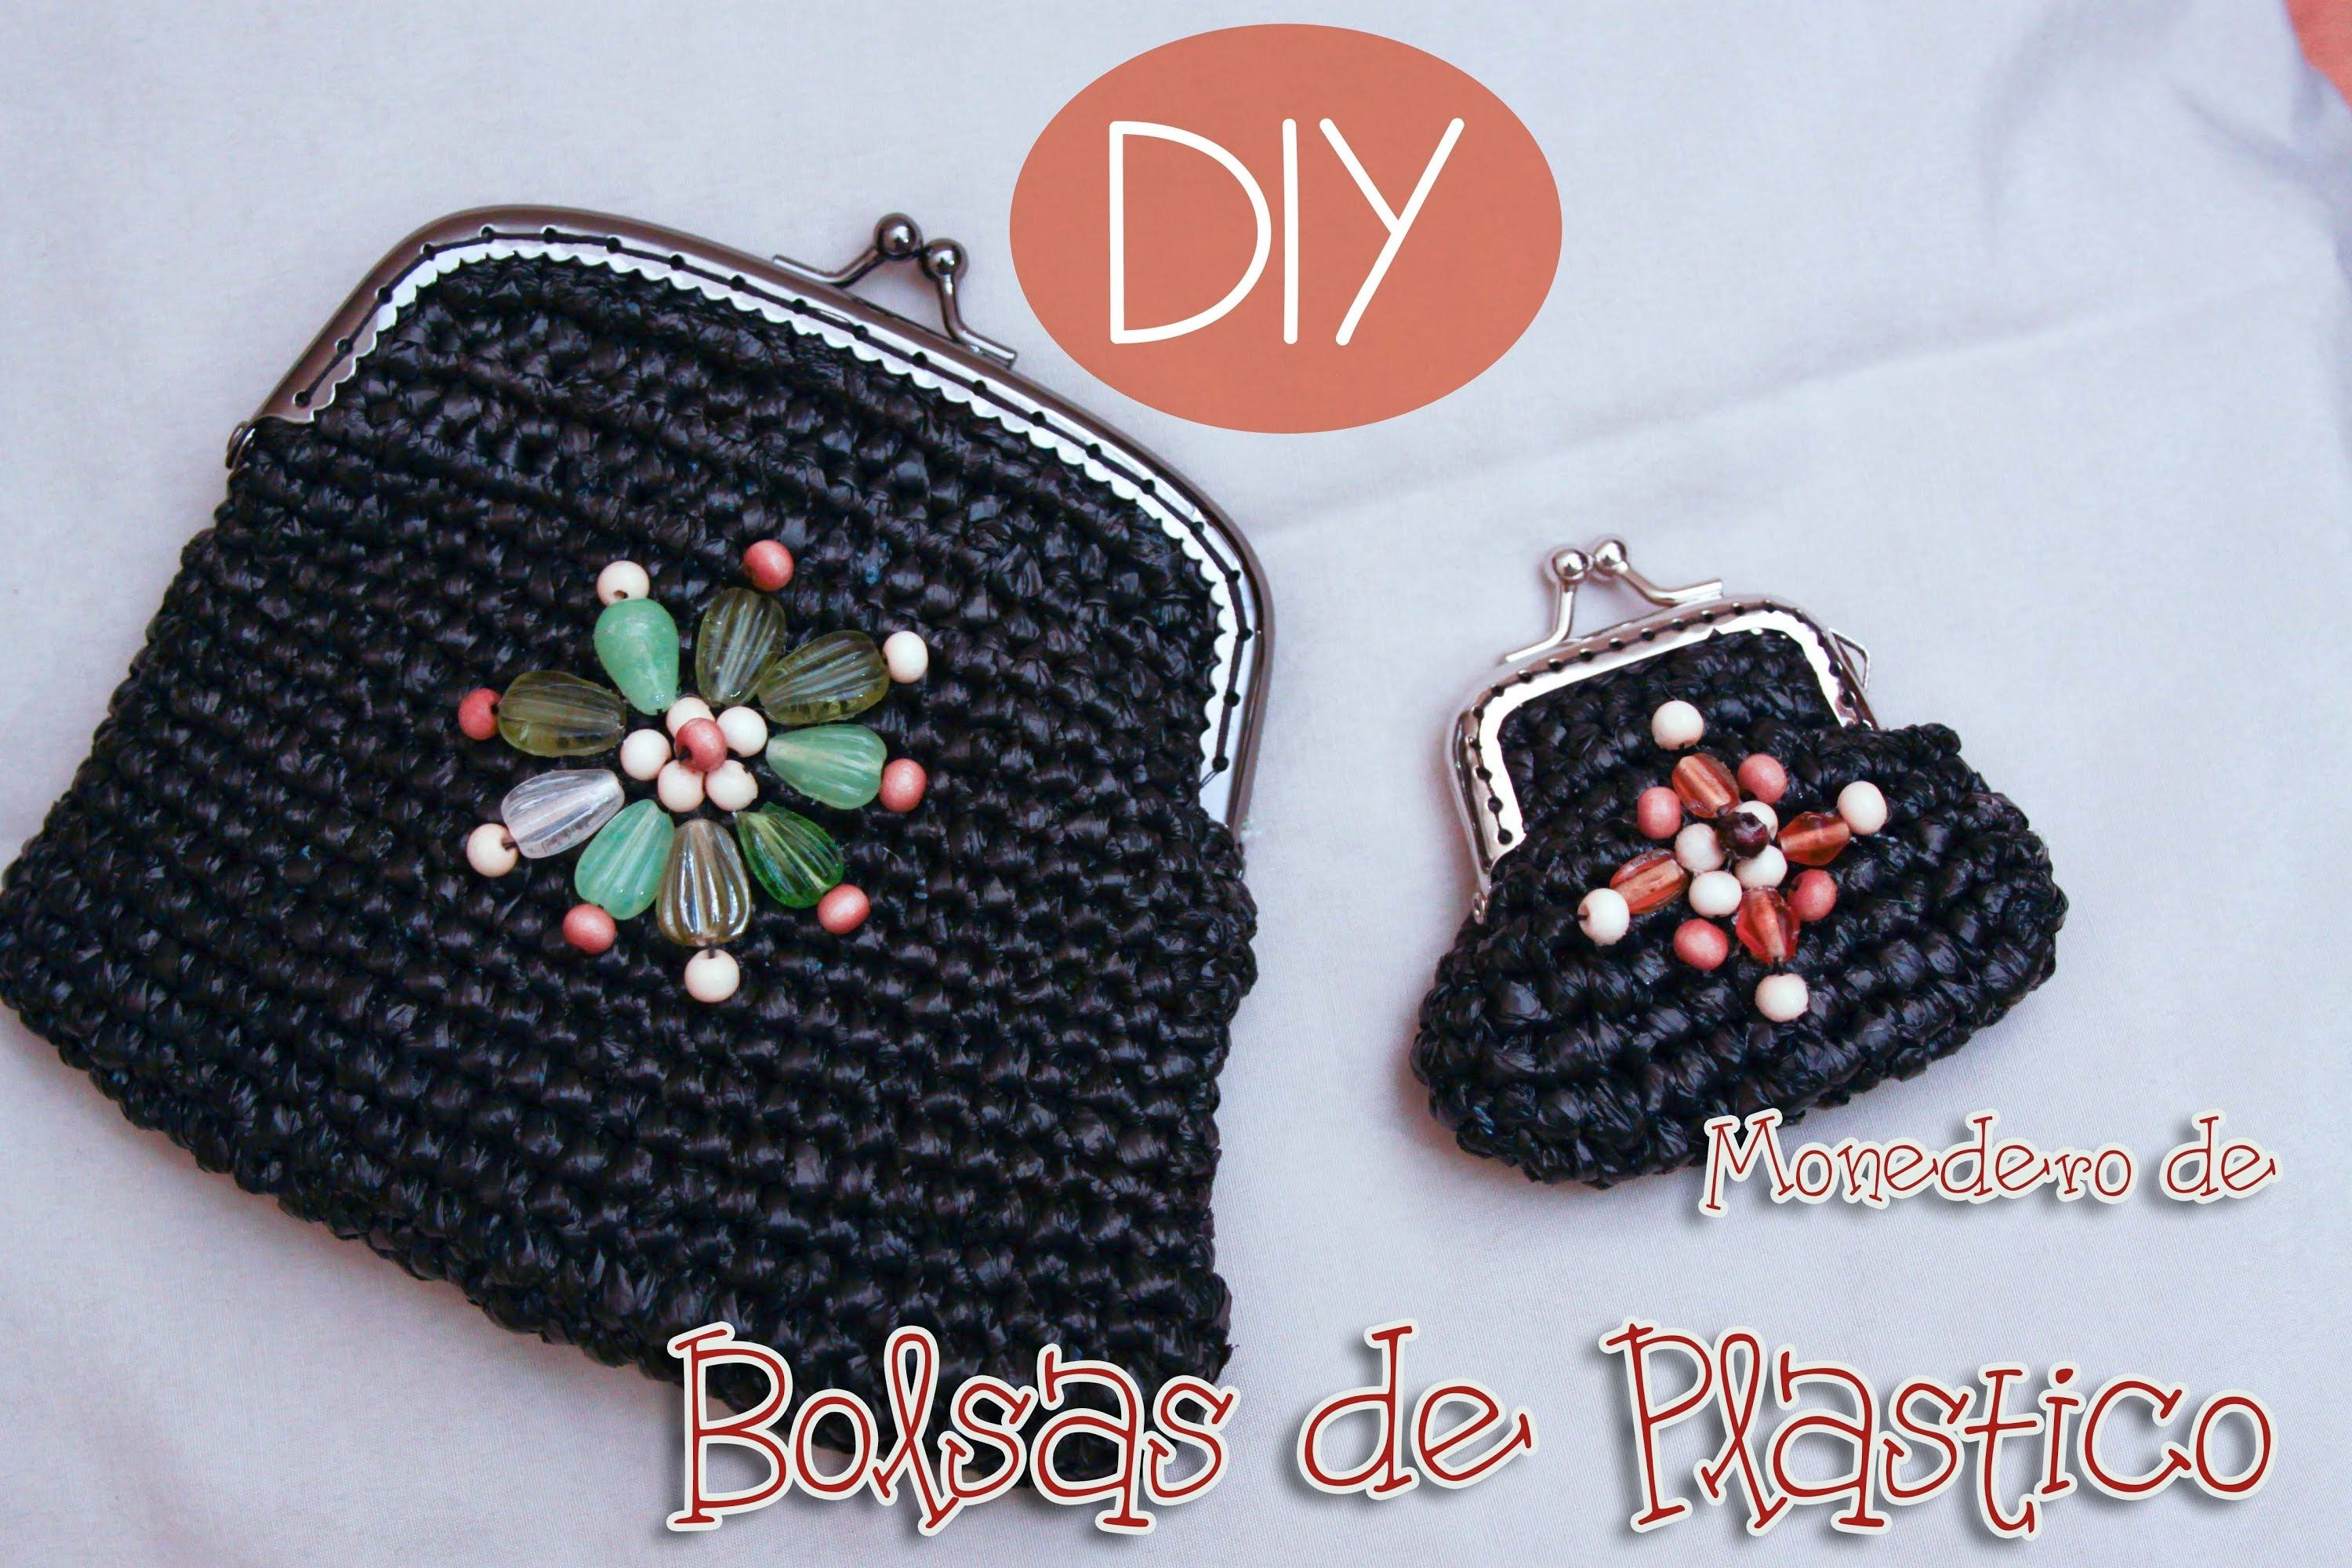 Monedero de bolsas de plastico | Knitting + Crocheting Tips ...